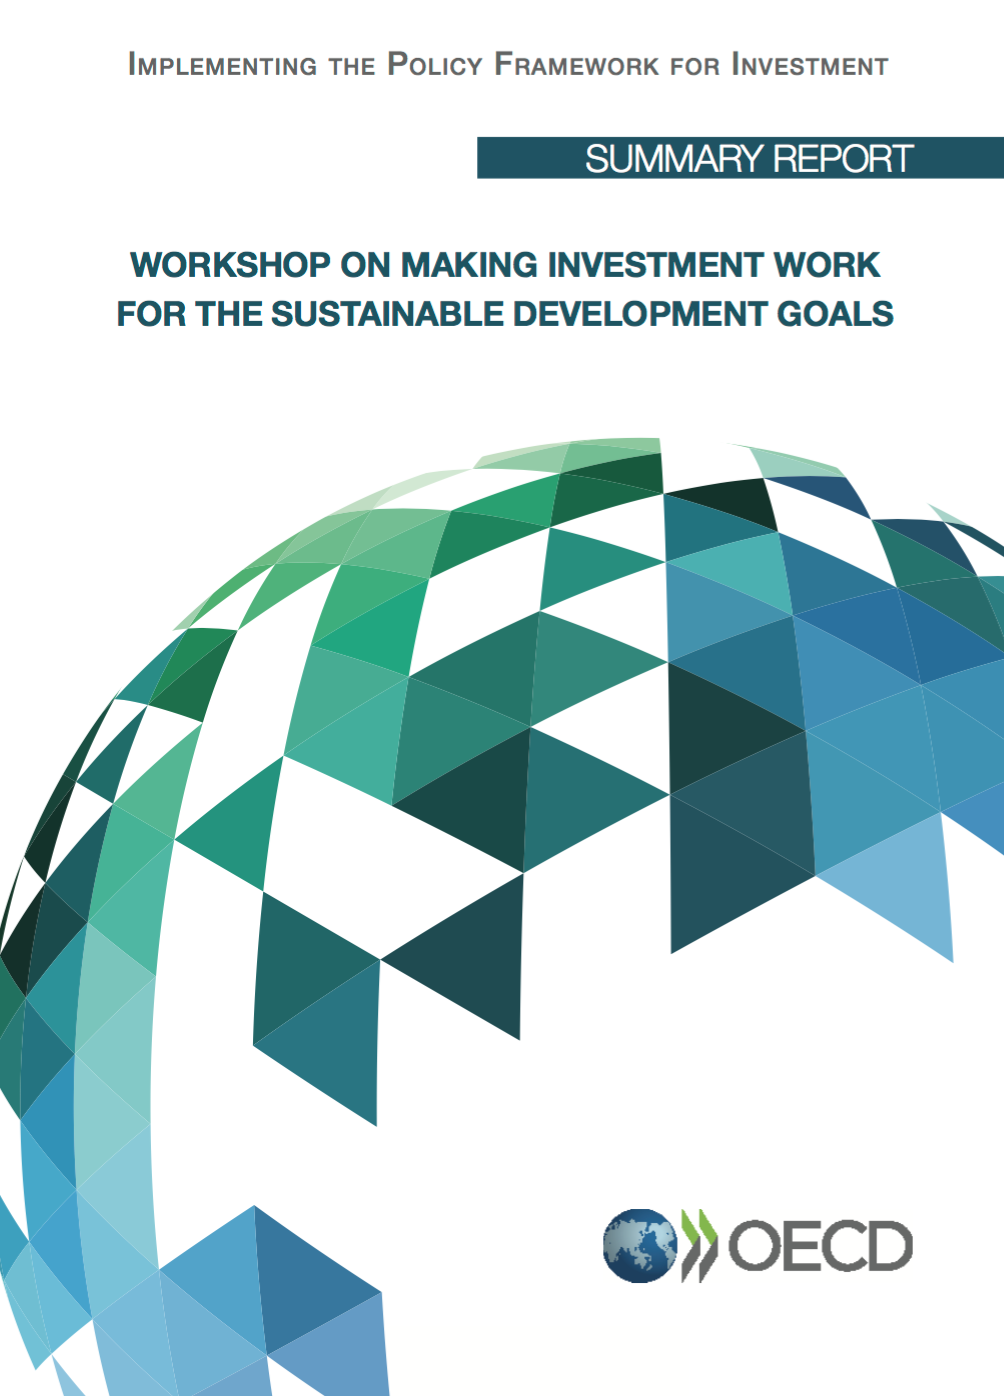 Workshop on making Investment work for the SDGs